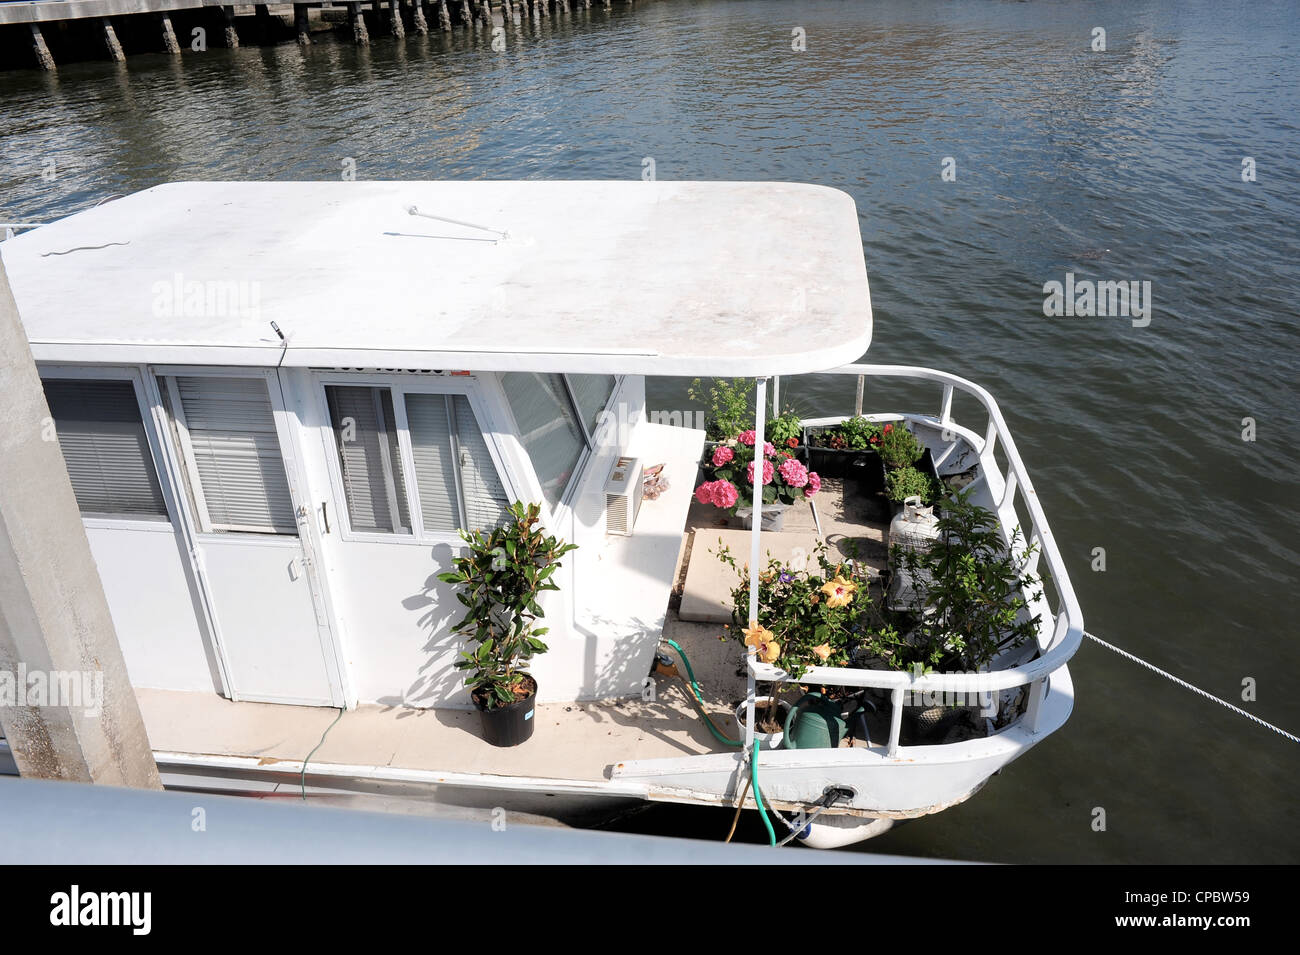 Houseboat with potted plants - Stock Image